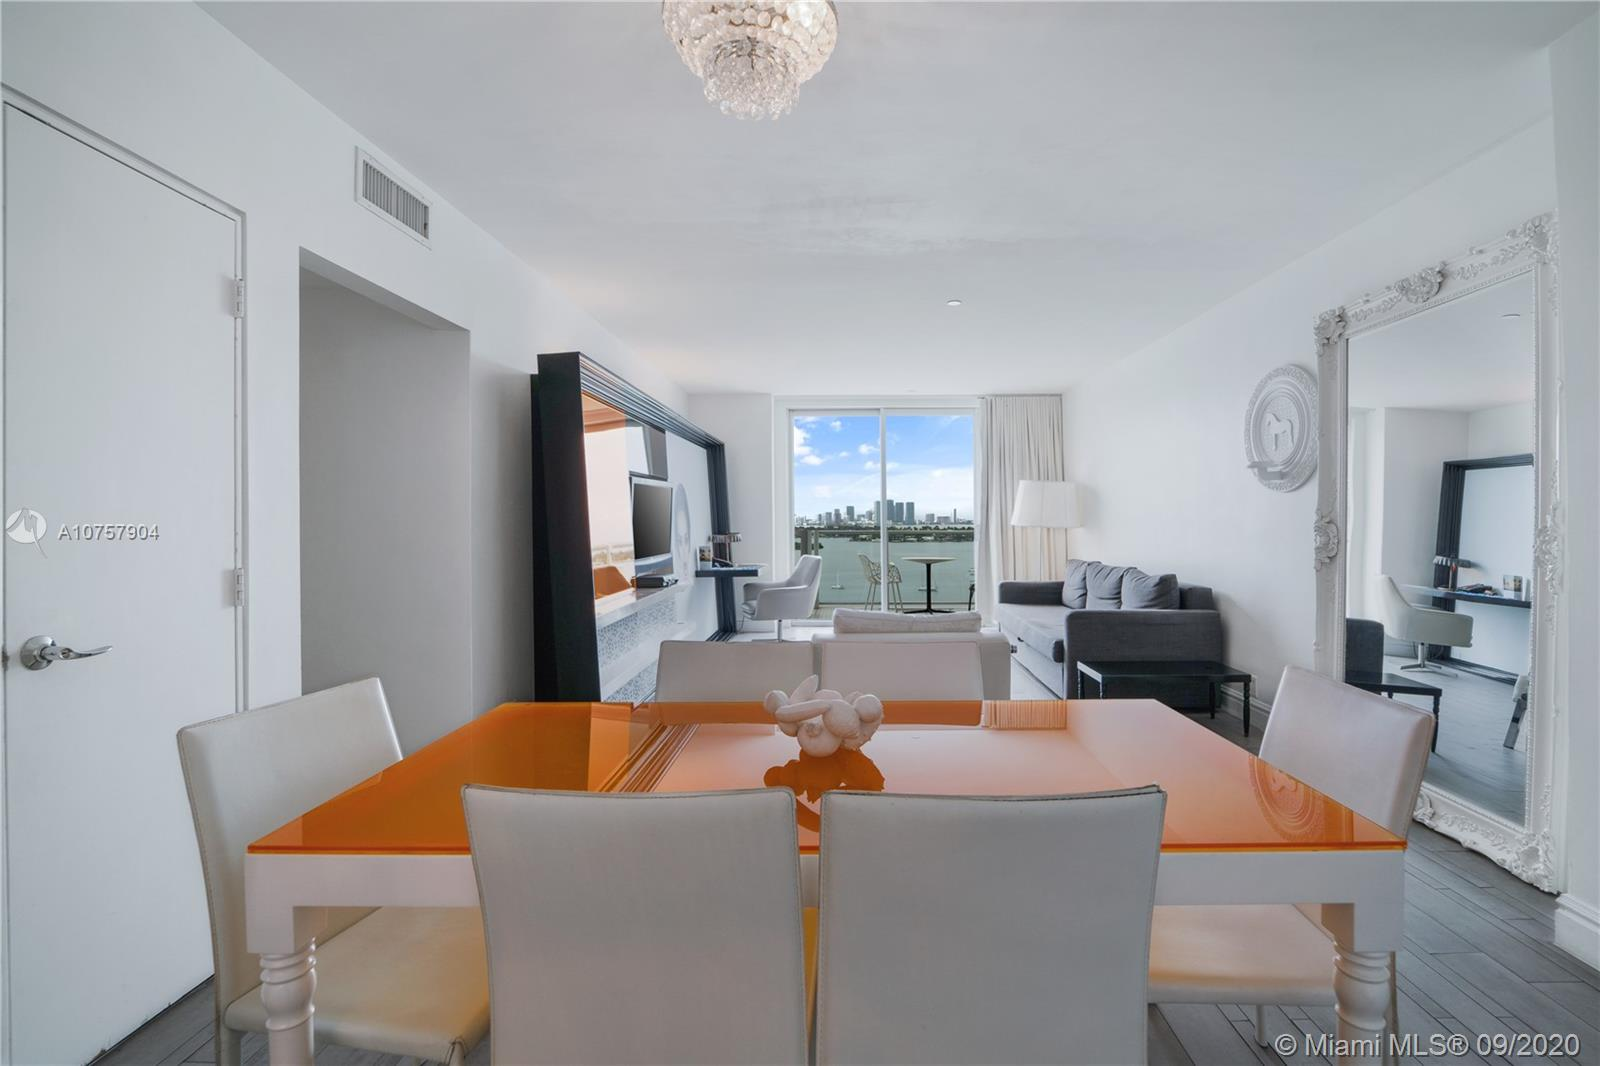 Details for 1100 West Ave  526, Miami Beach, FL 33139